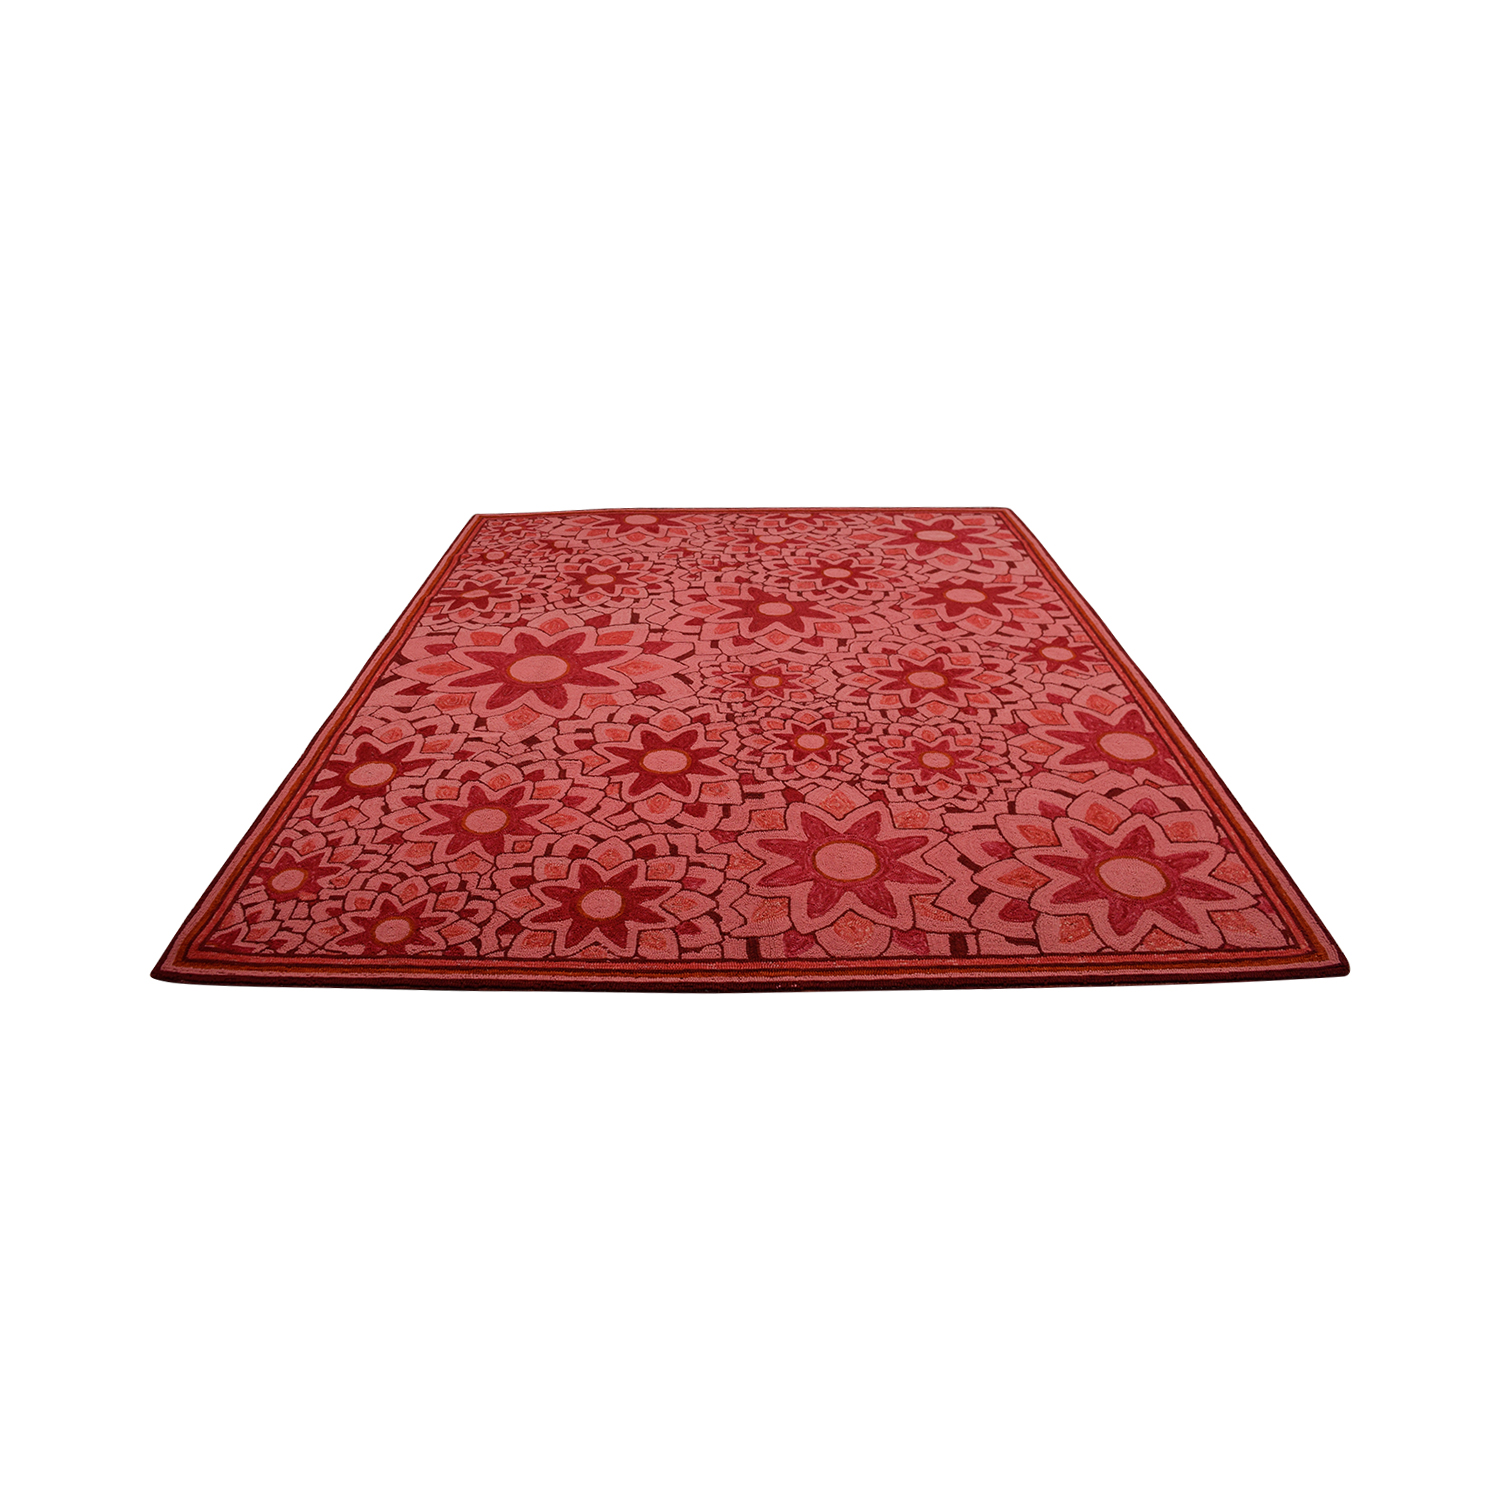 Obeetee Obeetee Hand Hooked Red Floral Rug for sale